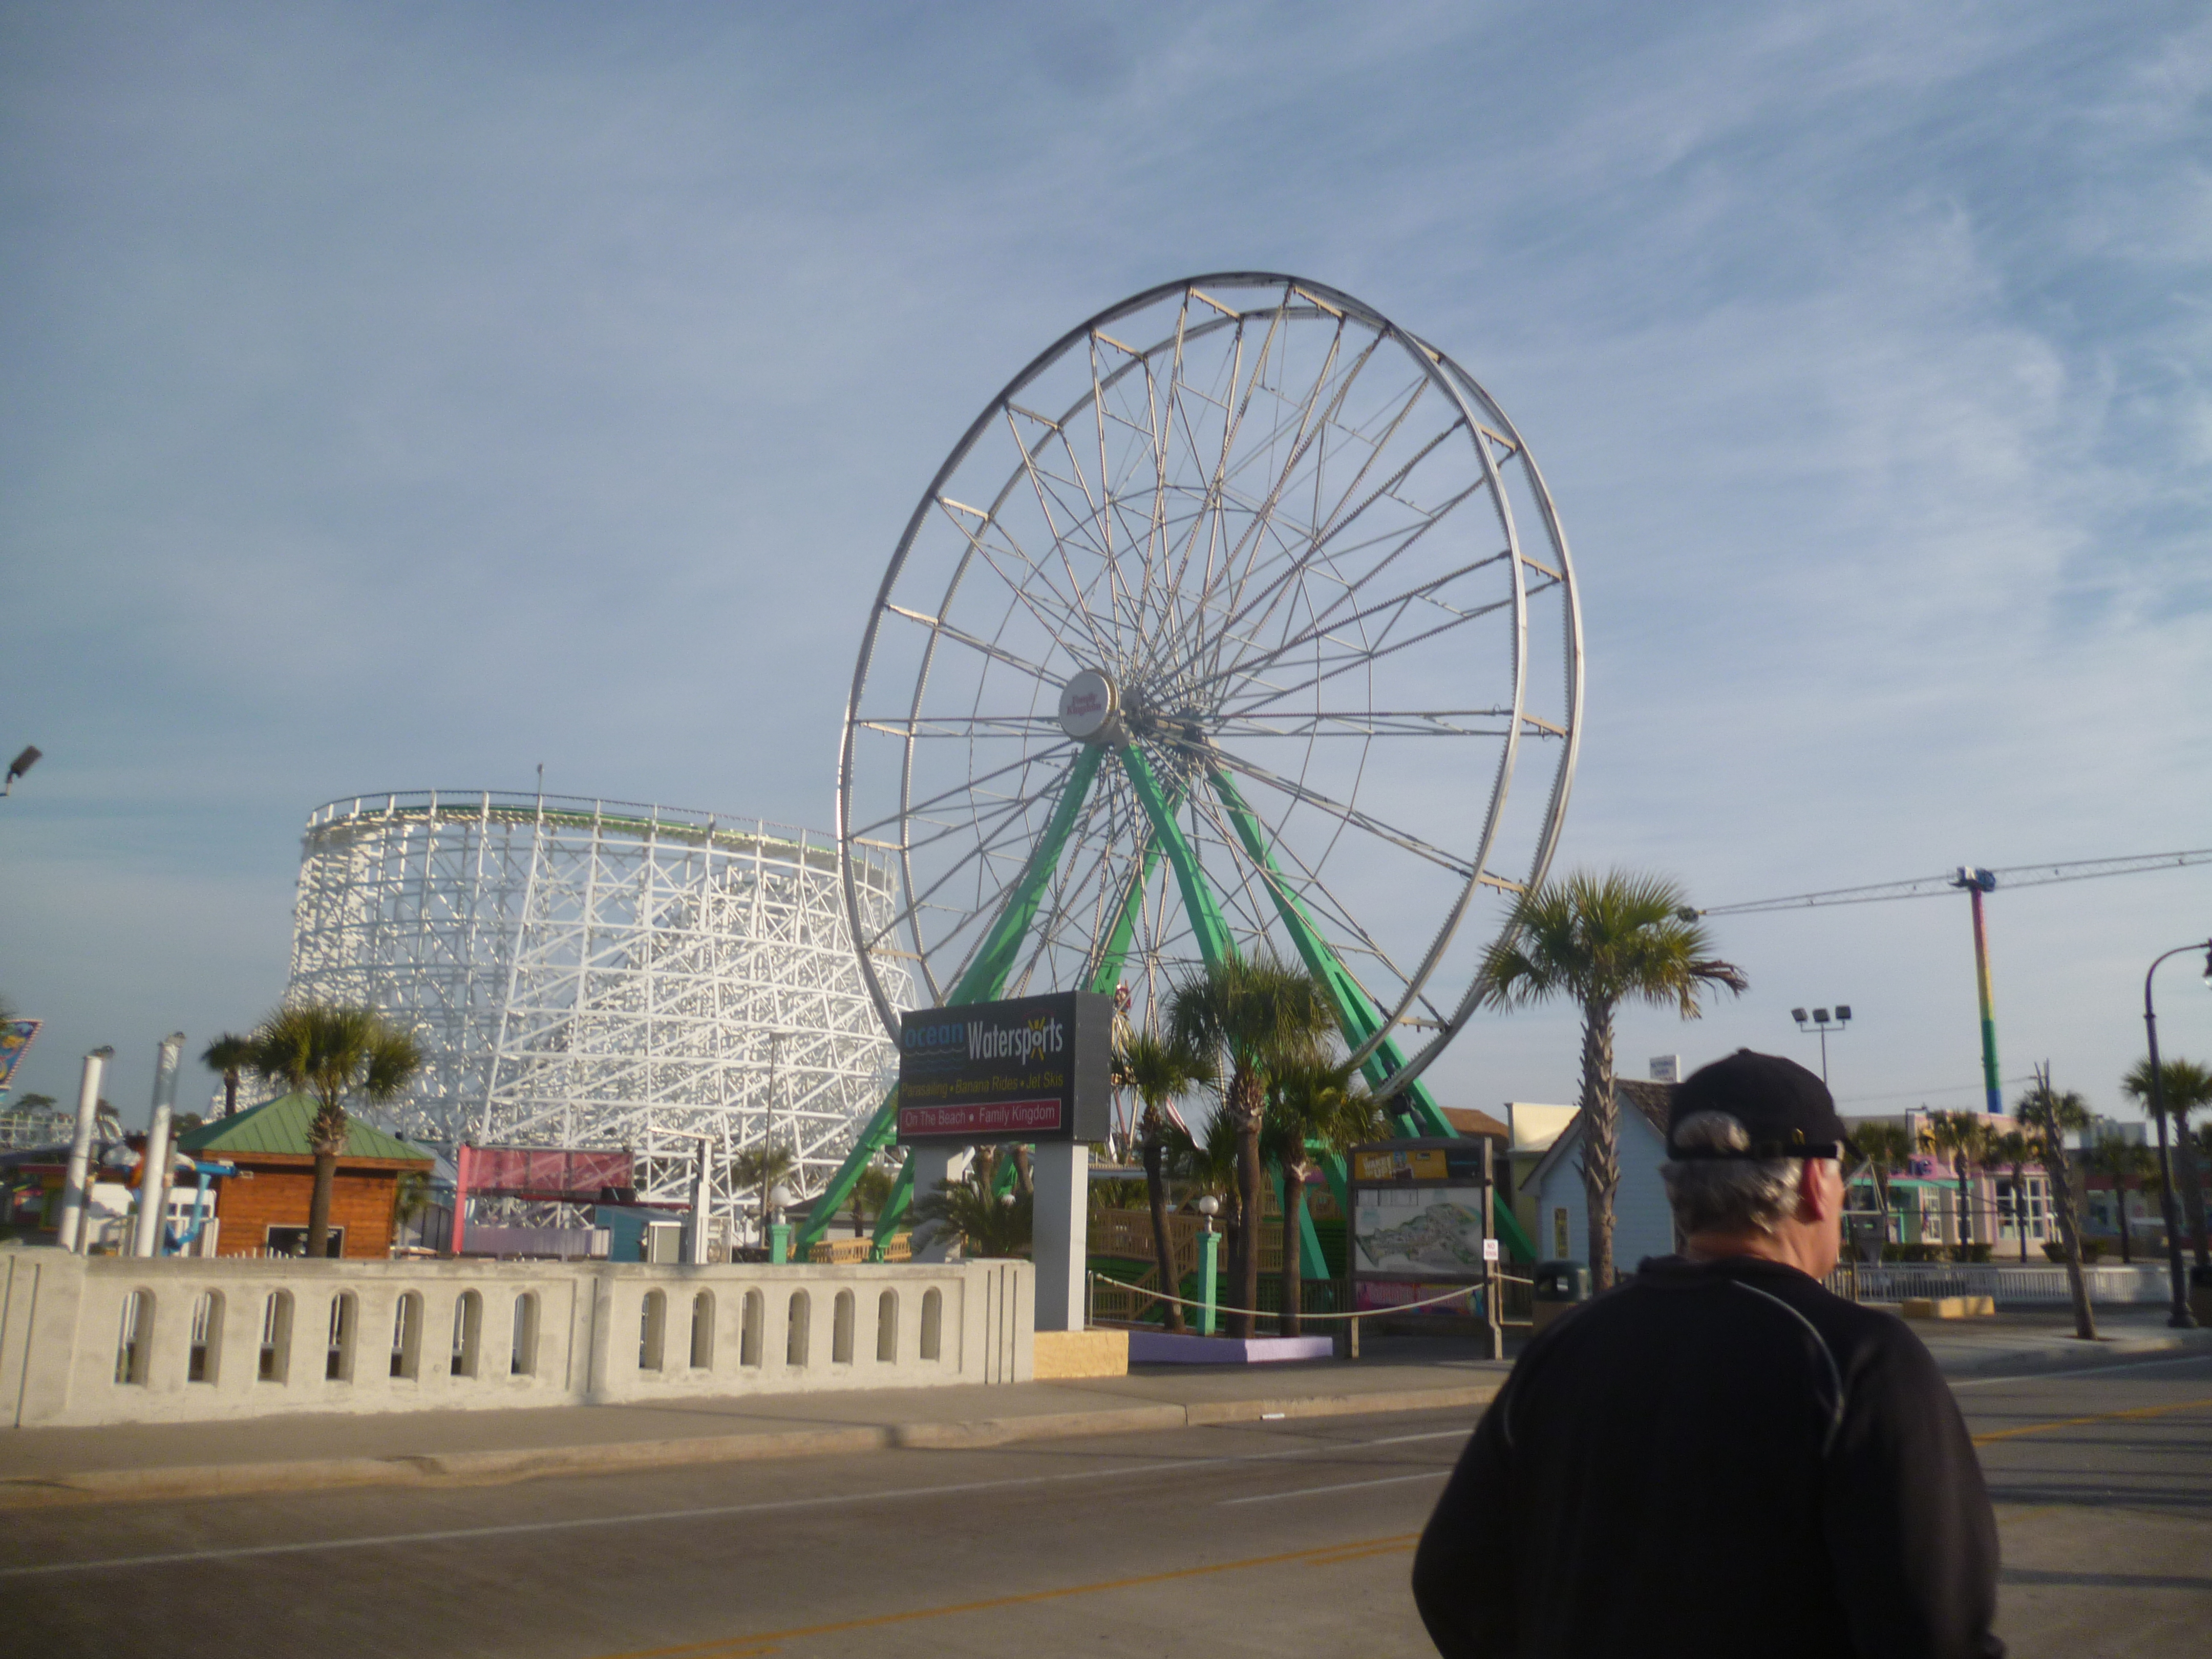 I lost count of the number of Ferris wheels we ran past, but I liked it.